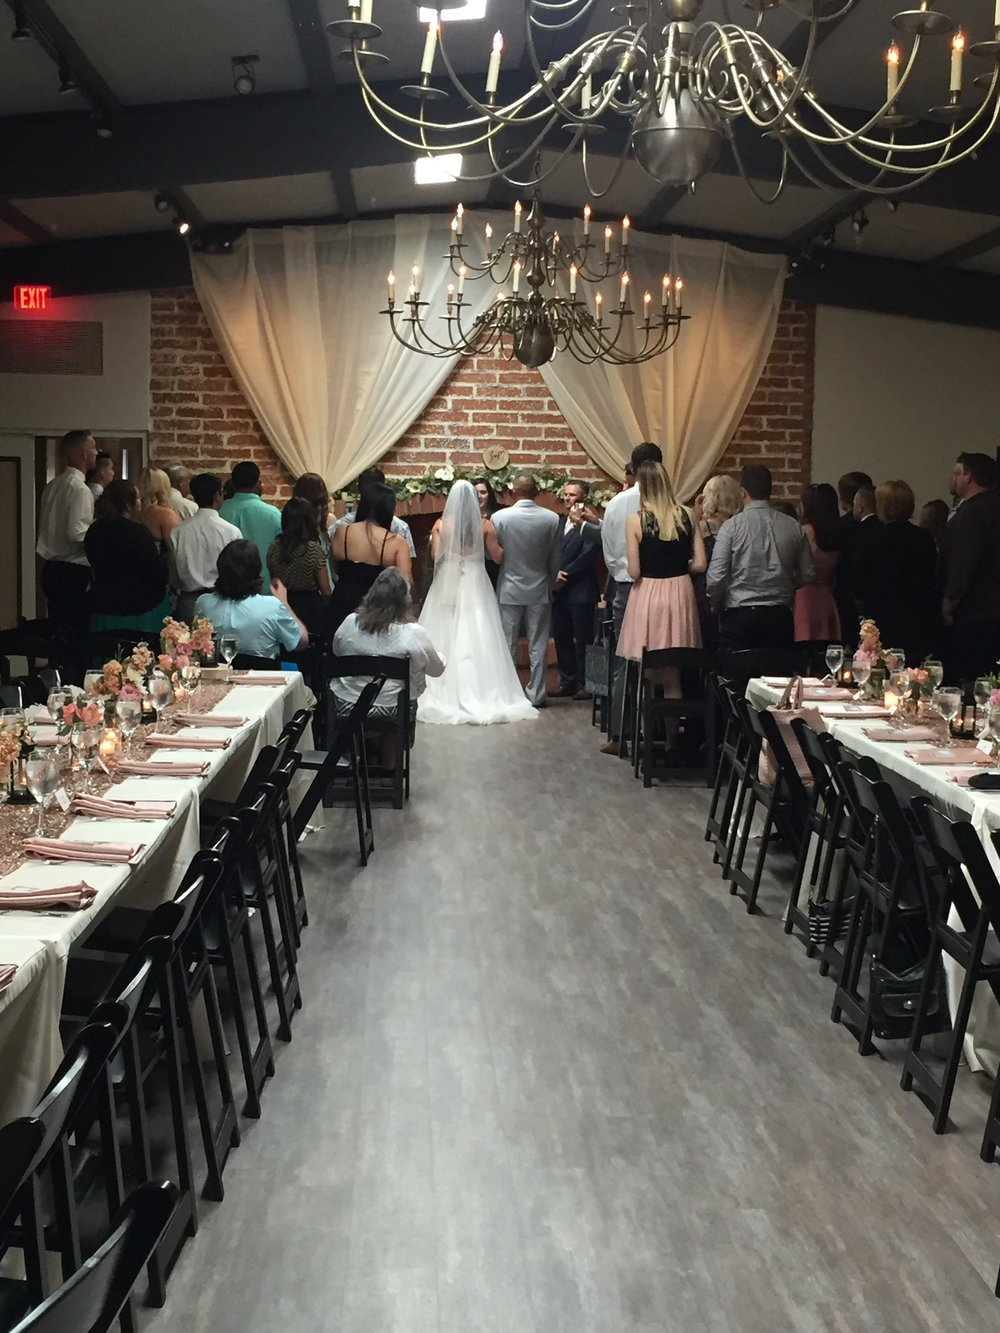 The Commons hosts up to 60 for wedding ceremony and reception.